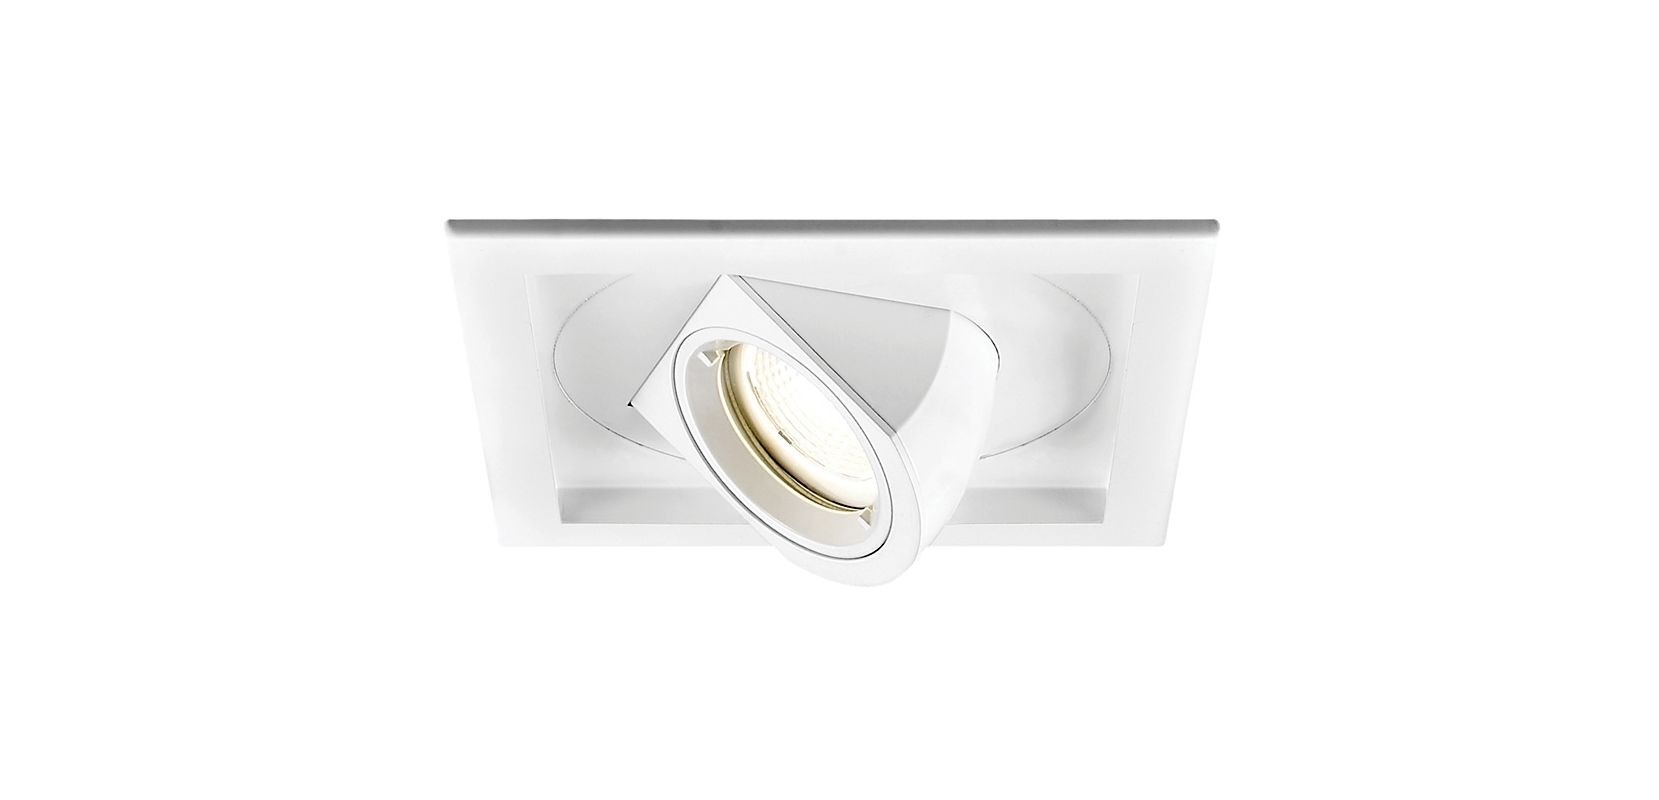 WAC Lighting MT-5LD125T-F27 6&quote 2700K High Output LED Recessed Light